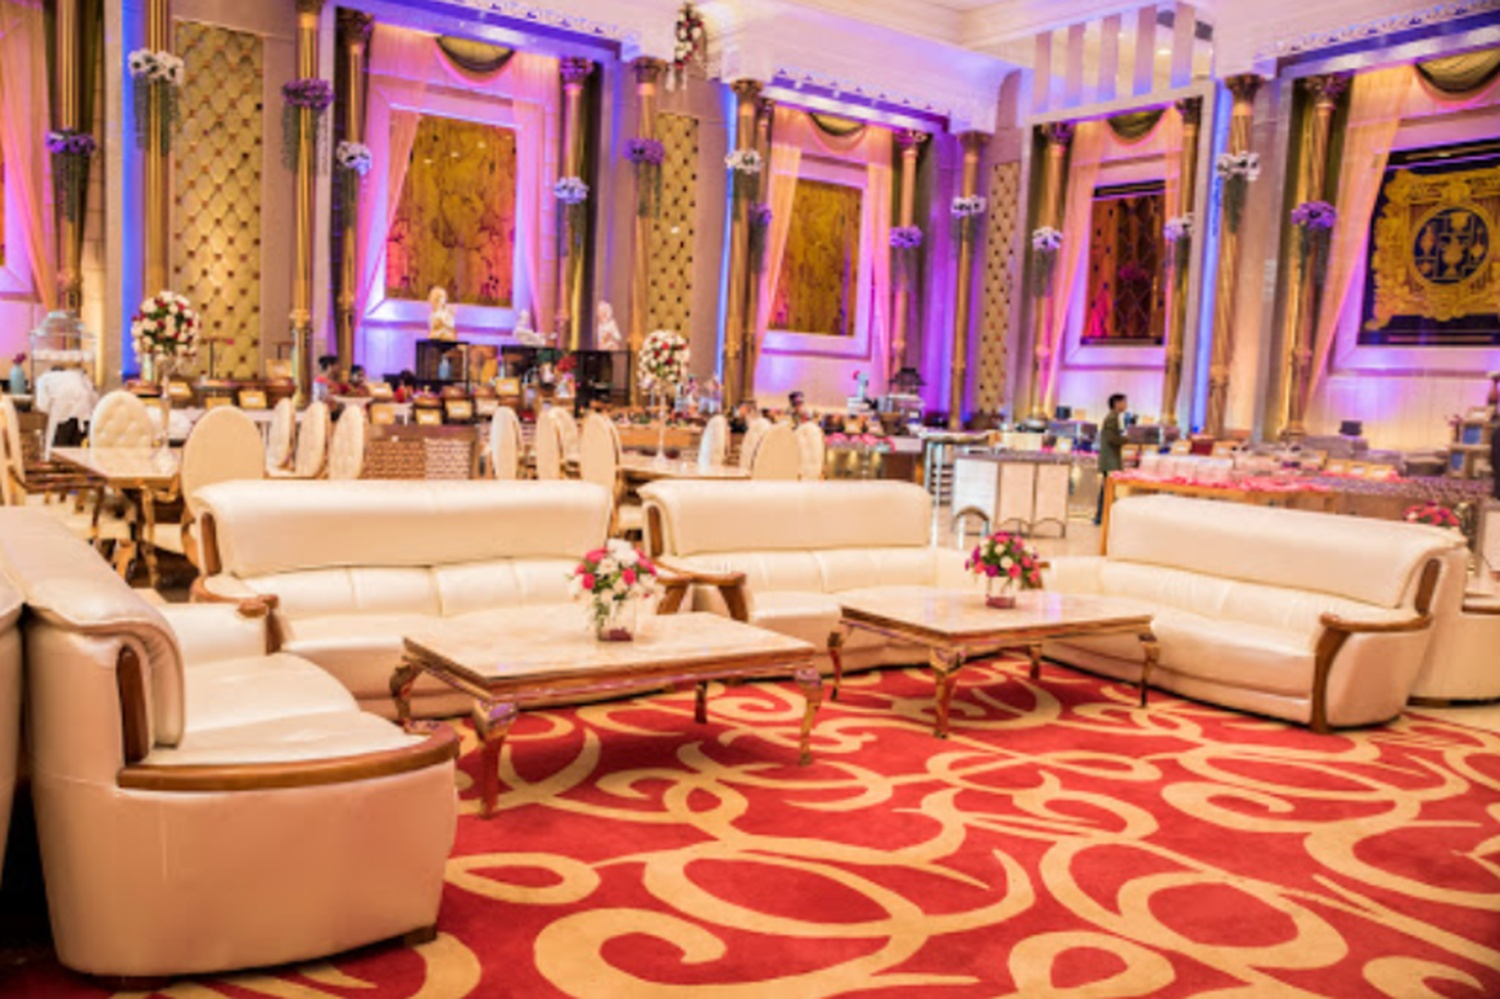 Diamond Crown Banquet Hall, Noida Sector 51, Delhi